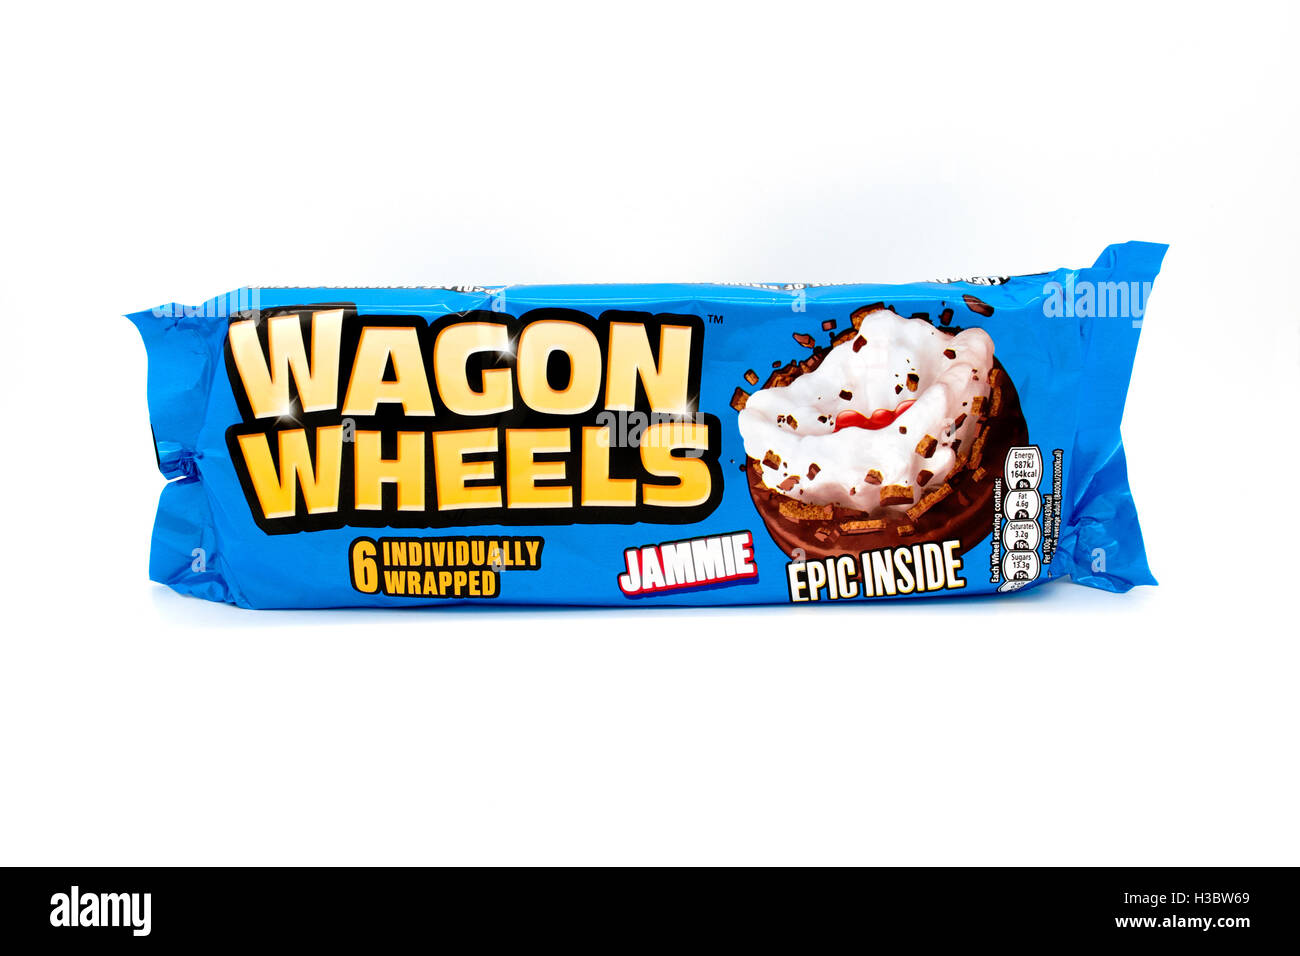 Burtons Wagon Wheels snack biscuits - Stock Image